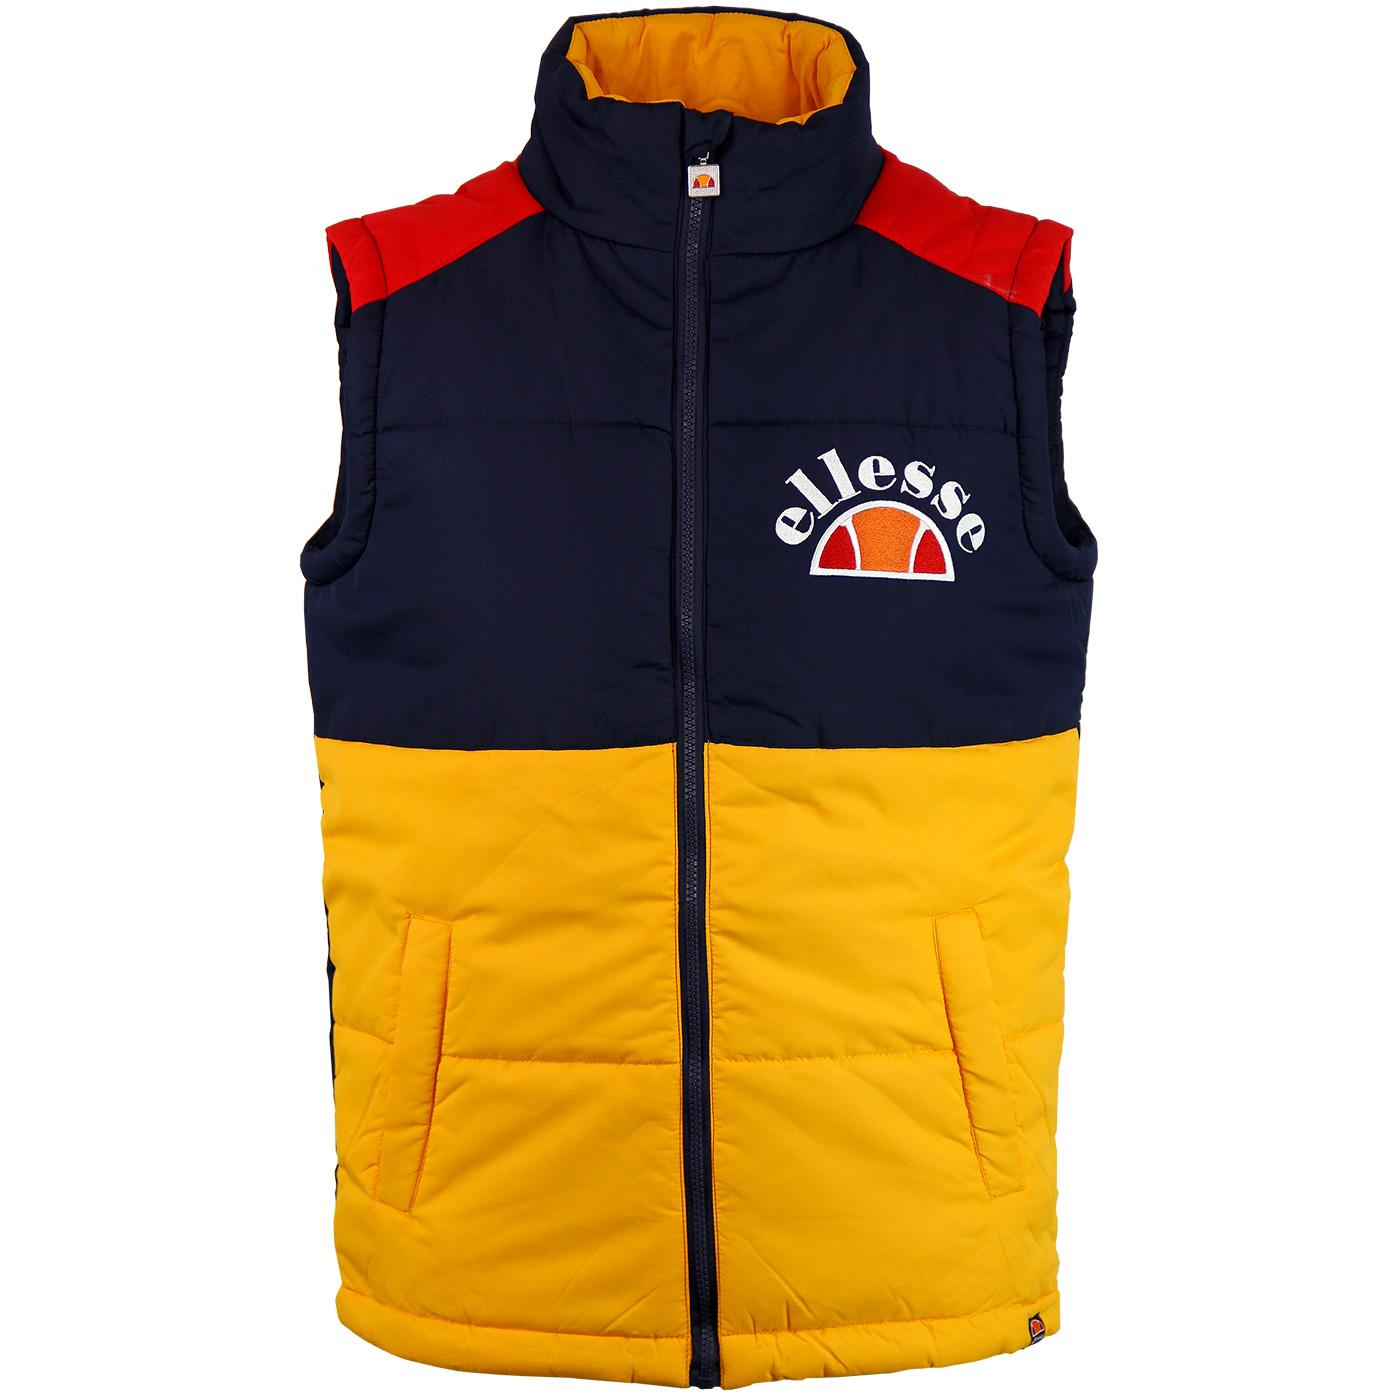 Sorbo ELLESSE Mens 90's Retro Panel Ripstop Gilet